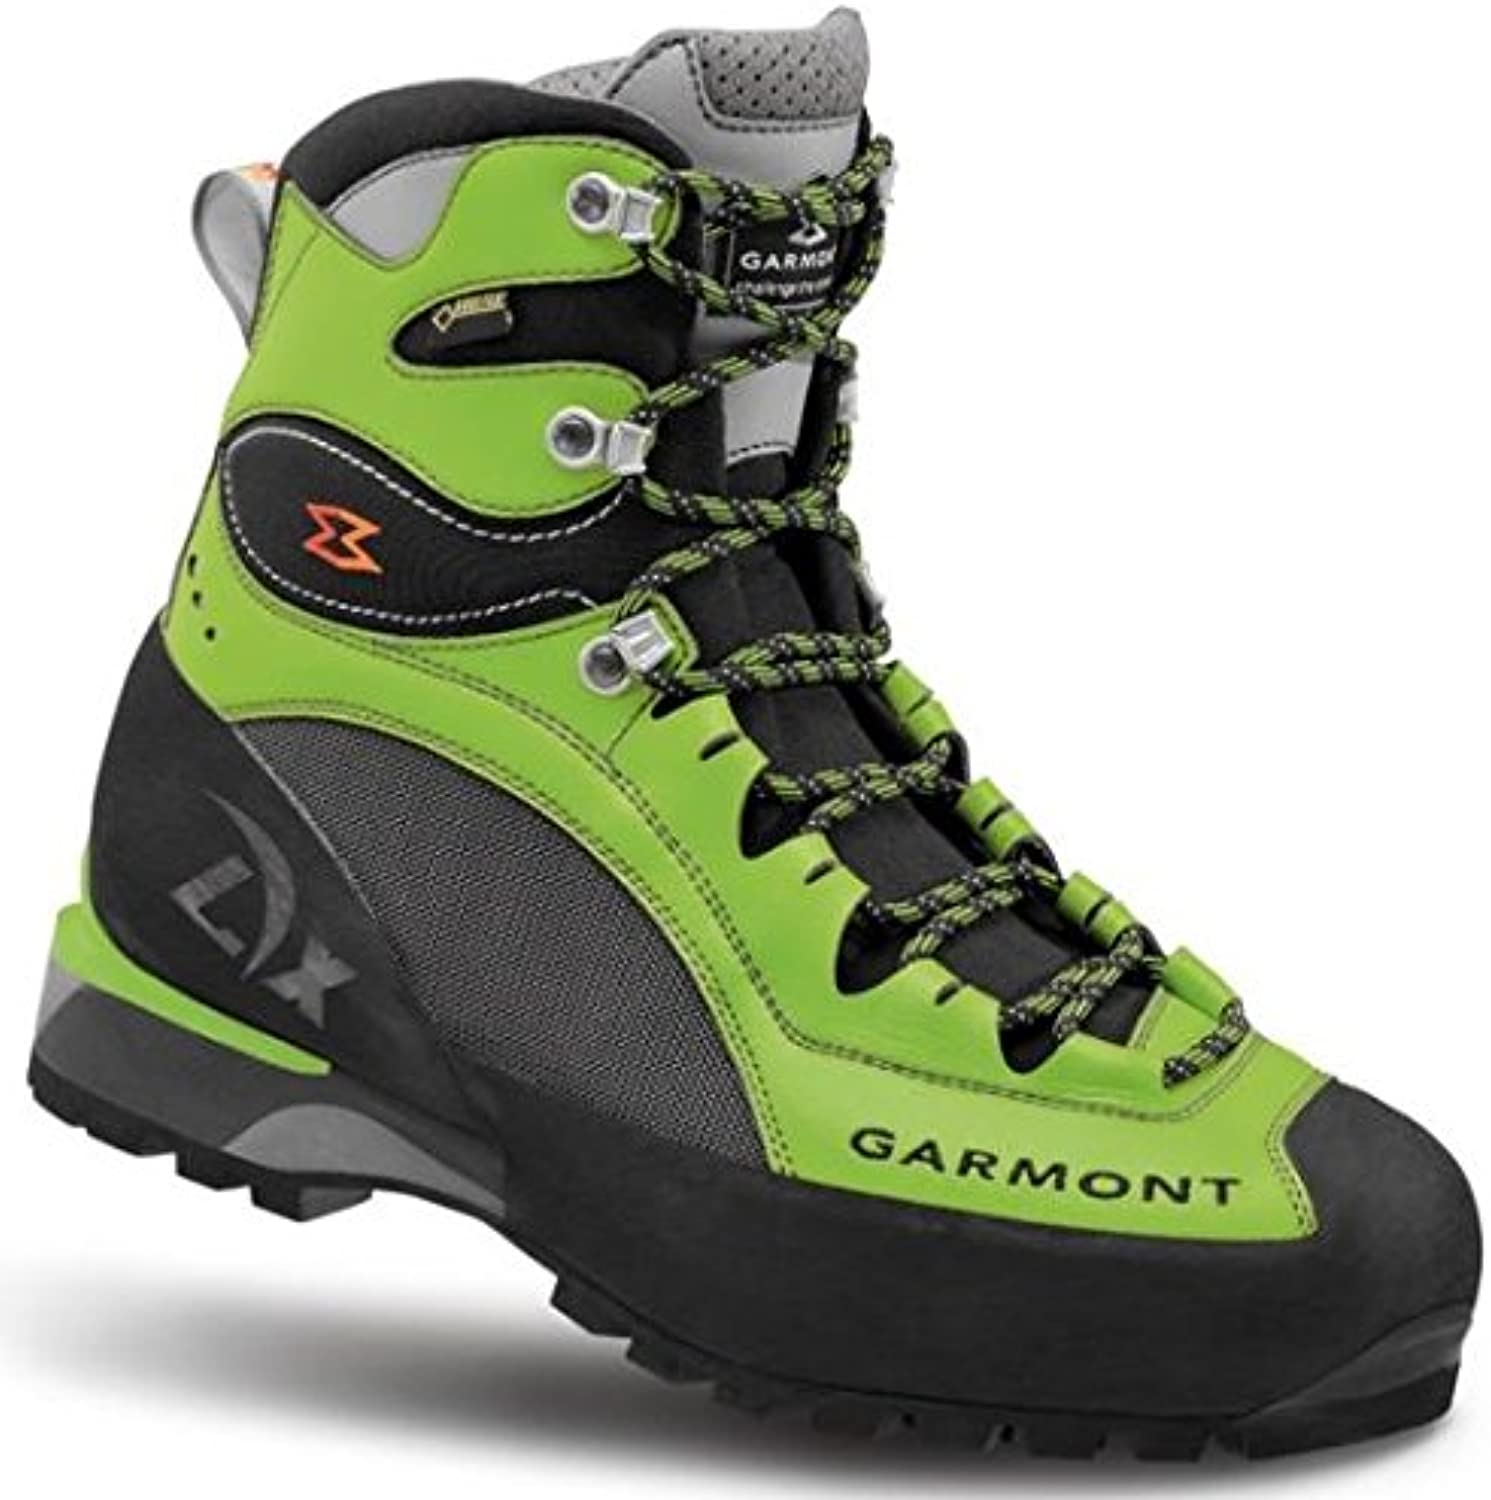 Garmont  Garmont Tower LX GTX  Acid Green/Silver  UK 7  41  Acid gree silver